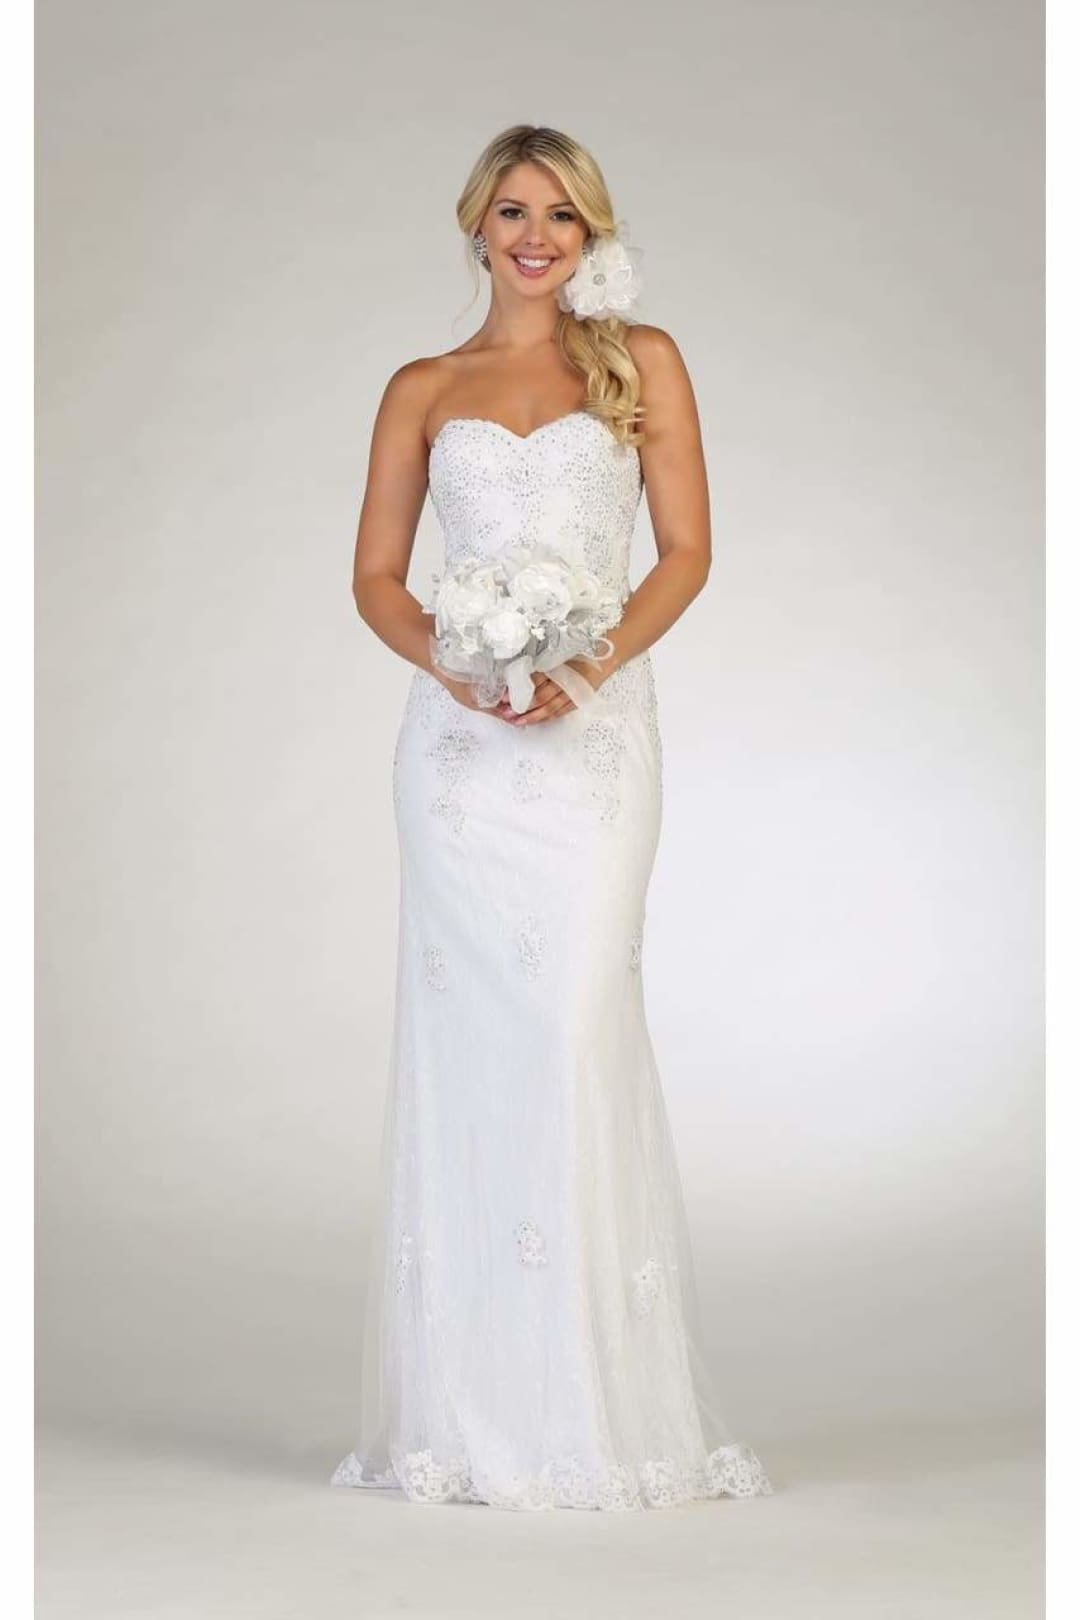 Strapless Wedding Dress - White / 4